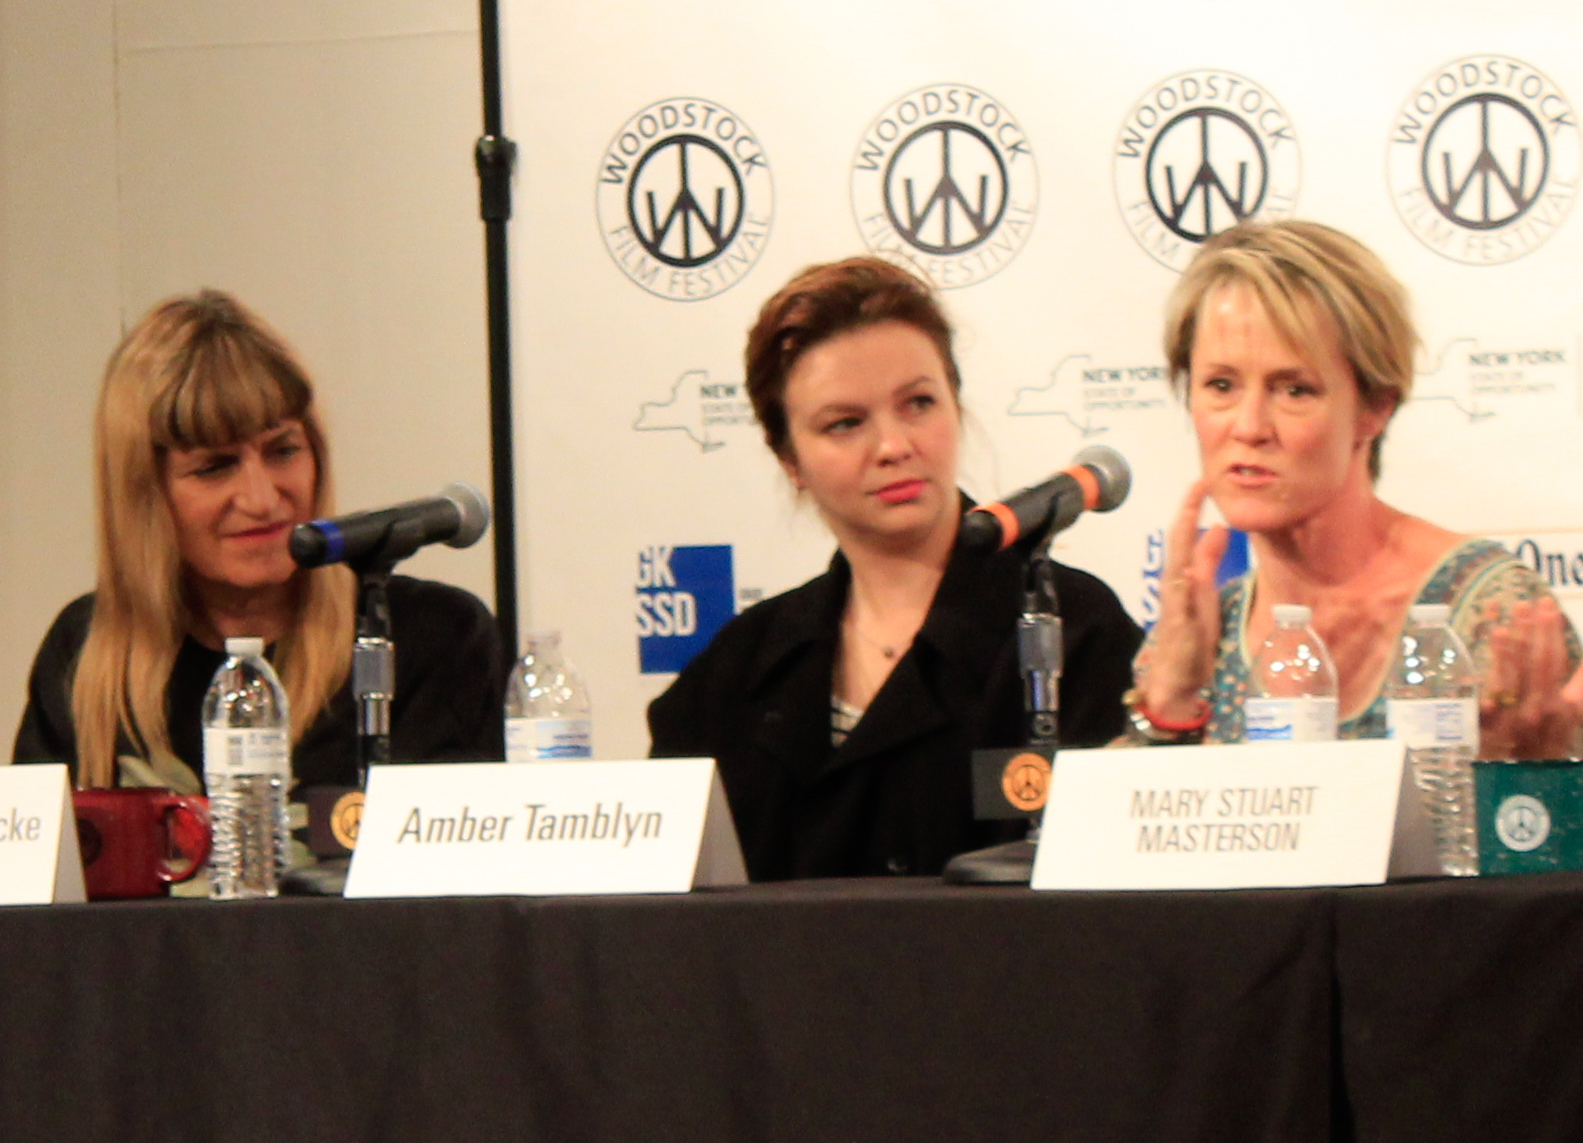 Amber Tamblyn  (C) on the 2016 Woodstock Film Festival Women in Film Panel, flanked by director  Catherine Hardwicke  (L) and actress  Mary Stuart Masterson  (R)